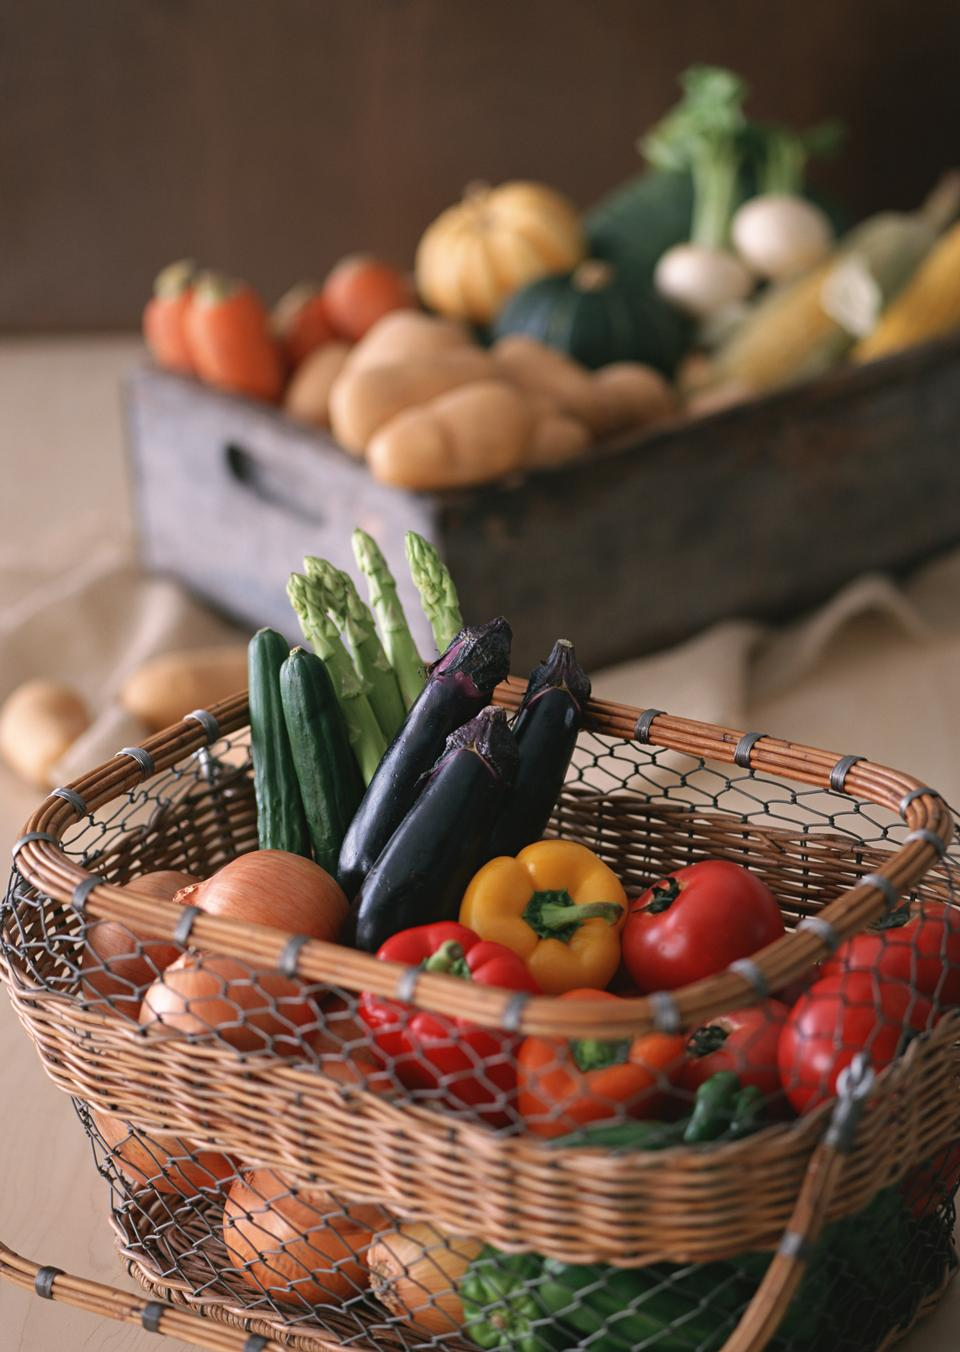 Assorted vegetables in basket on rustic wooden background.